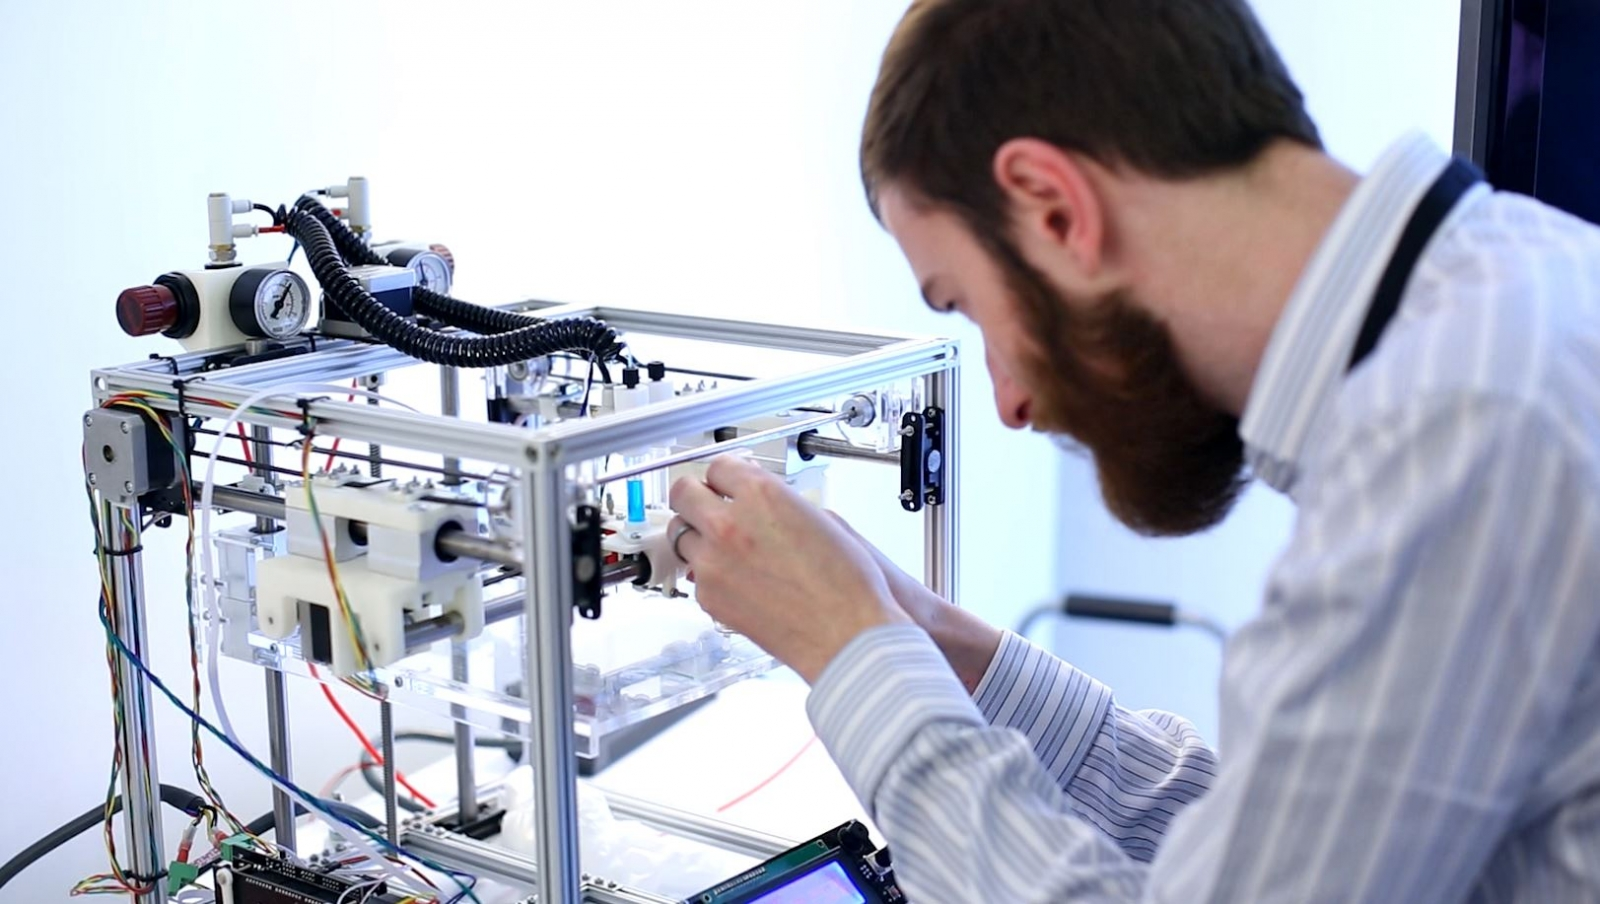 3d Printing In Medicine How The Technology Is Increasingly Being Used To Save Lives